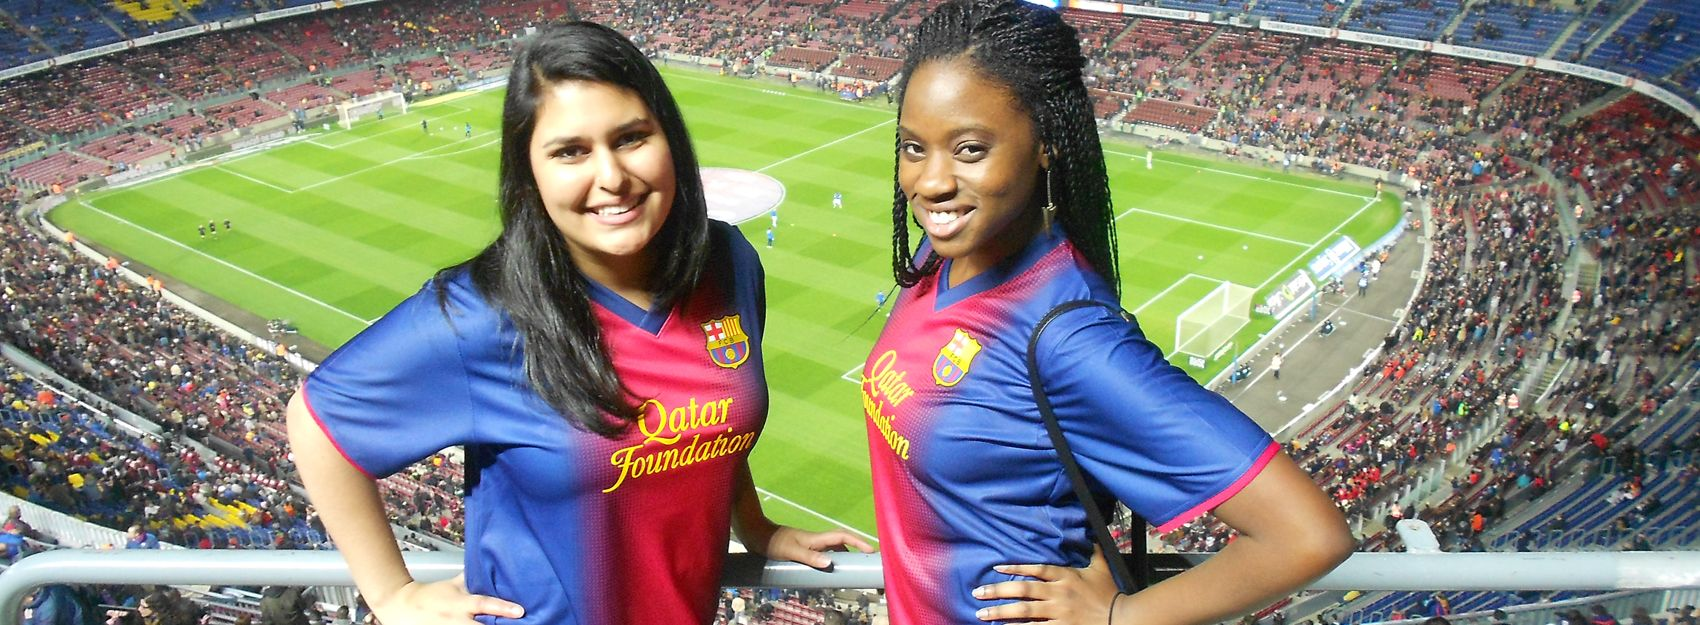 Two interns in stands at soccer stadium posing in jerseys